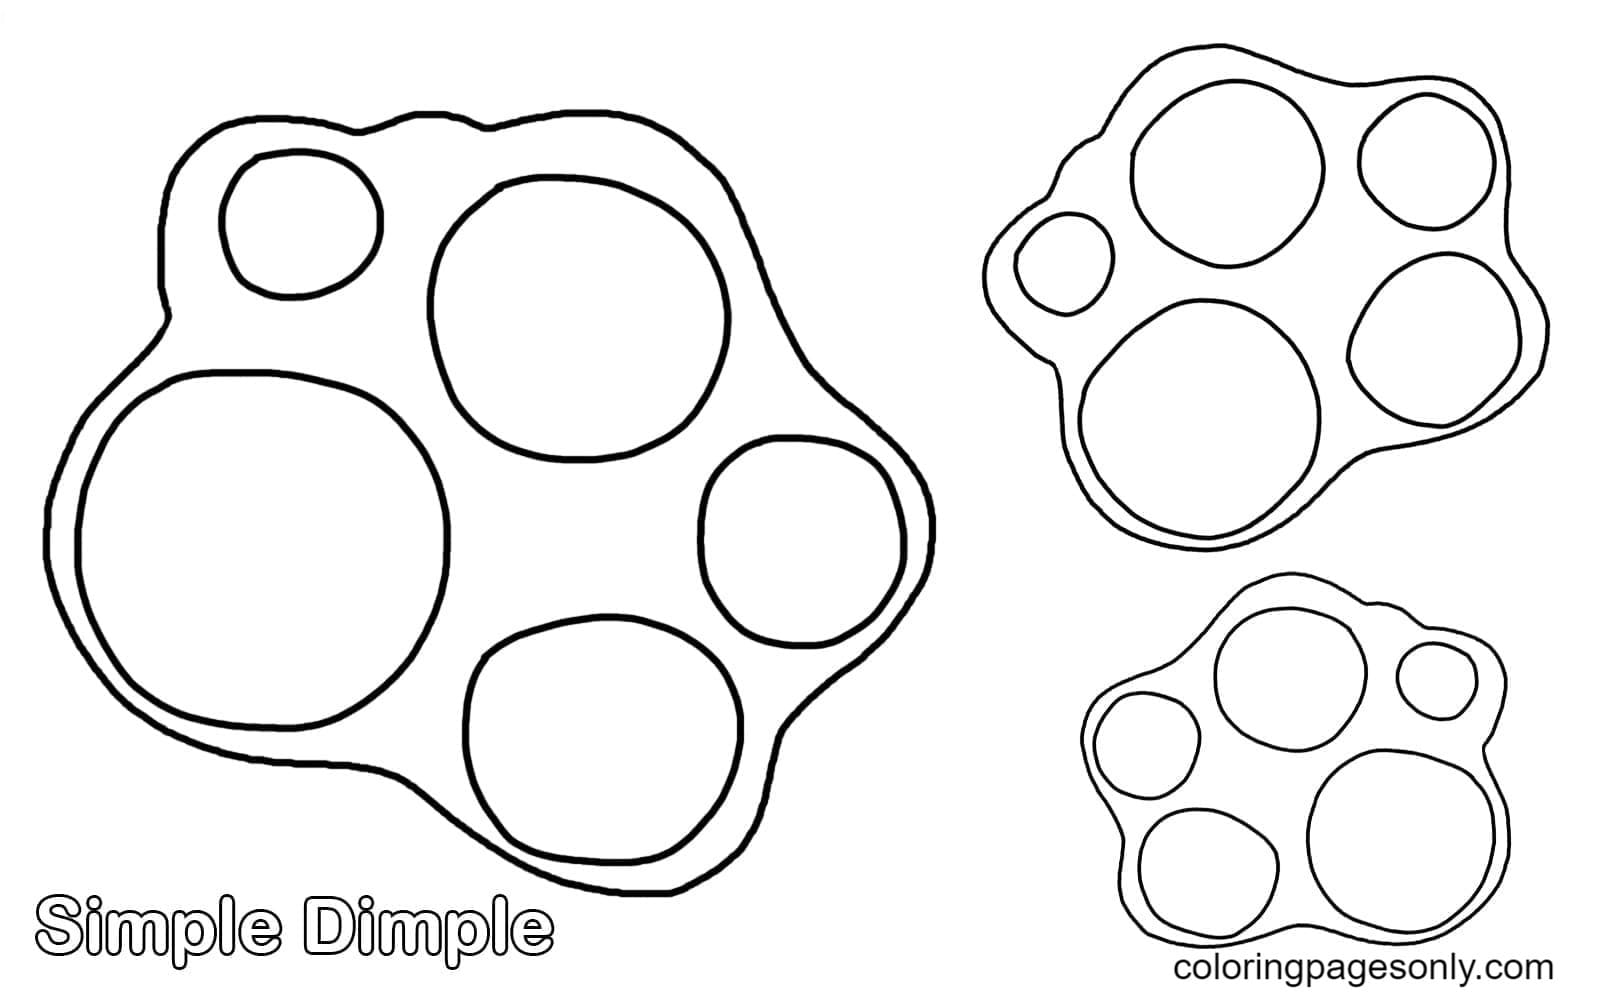 Simple Dimple Coloring Page